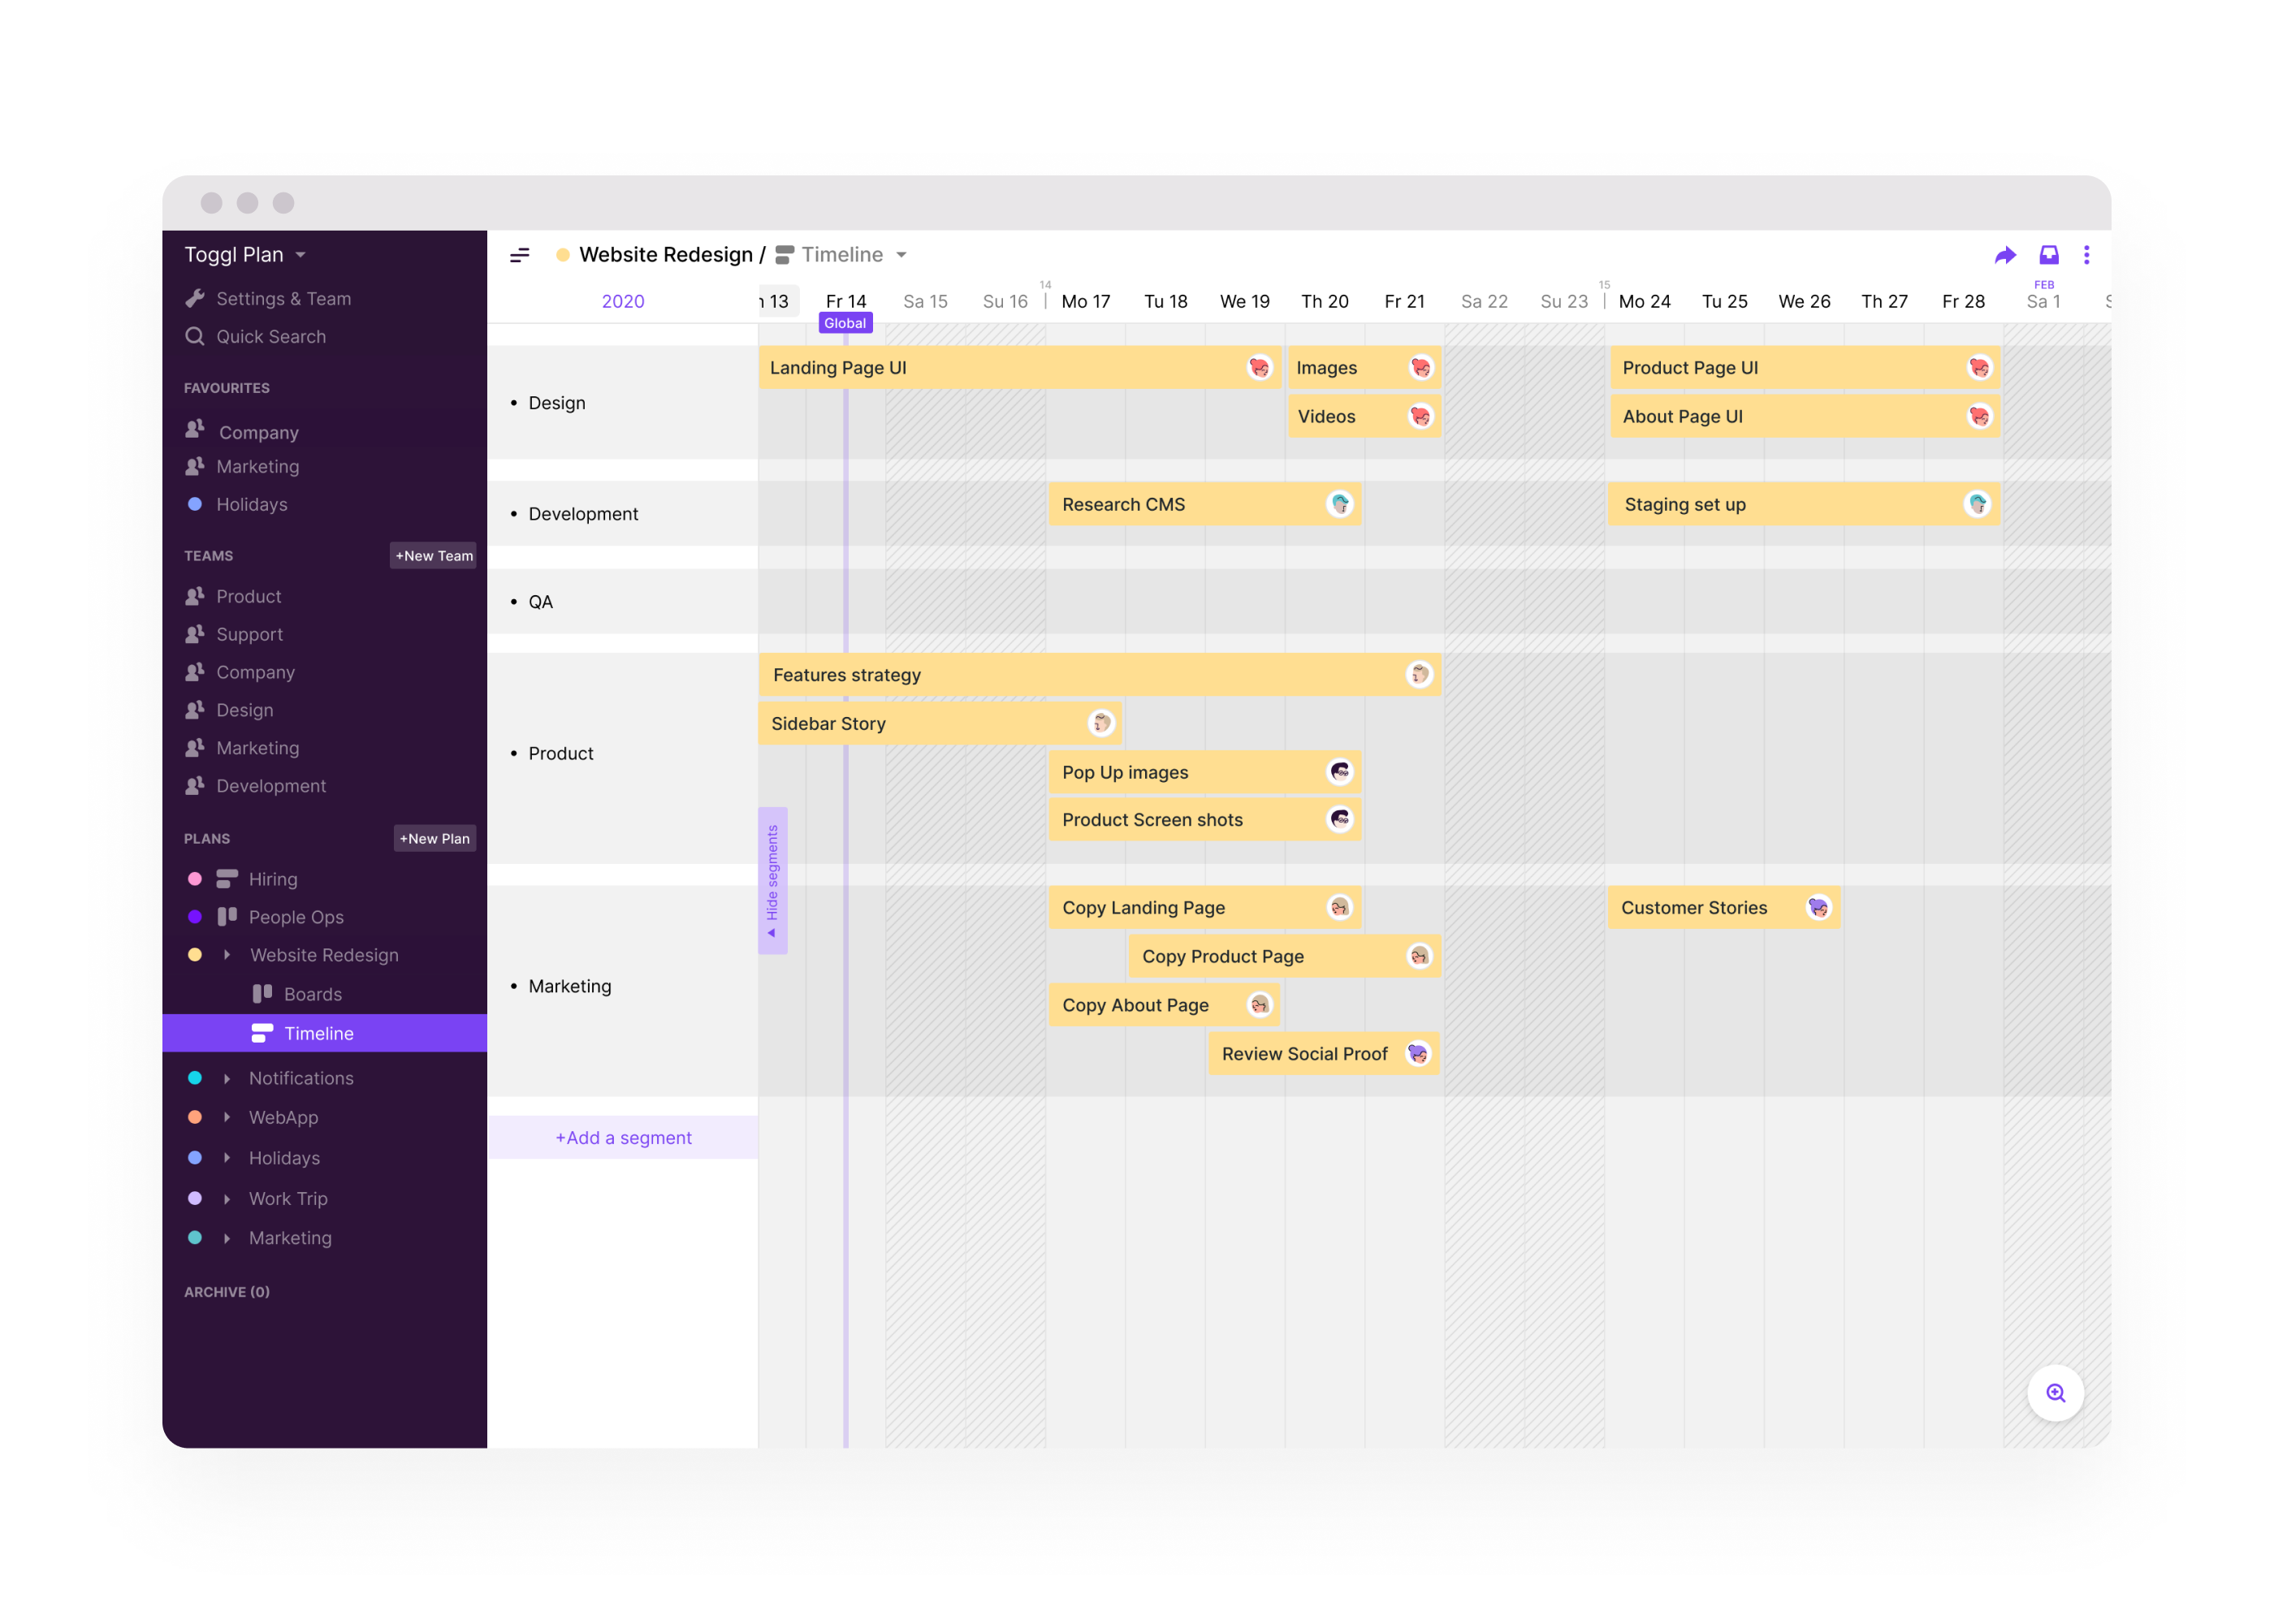 Project timeline - plan project steps on a colorful timeline and have a clear overview of when things need to be done. Change of plans? The simple drag-and-drop interface makes flexible planning easy.